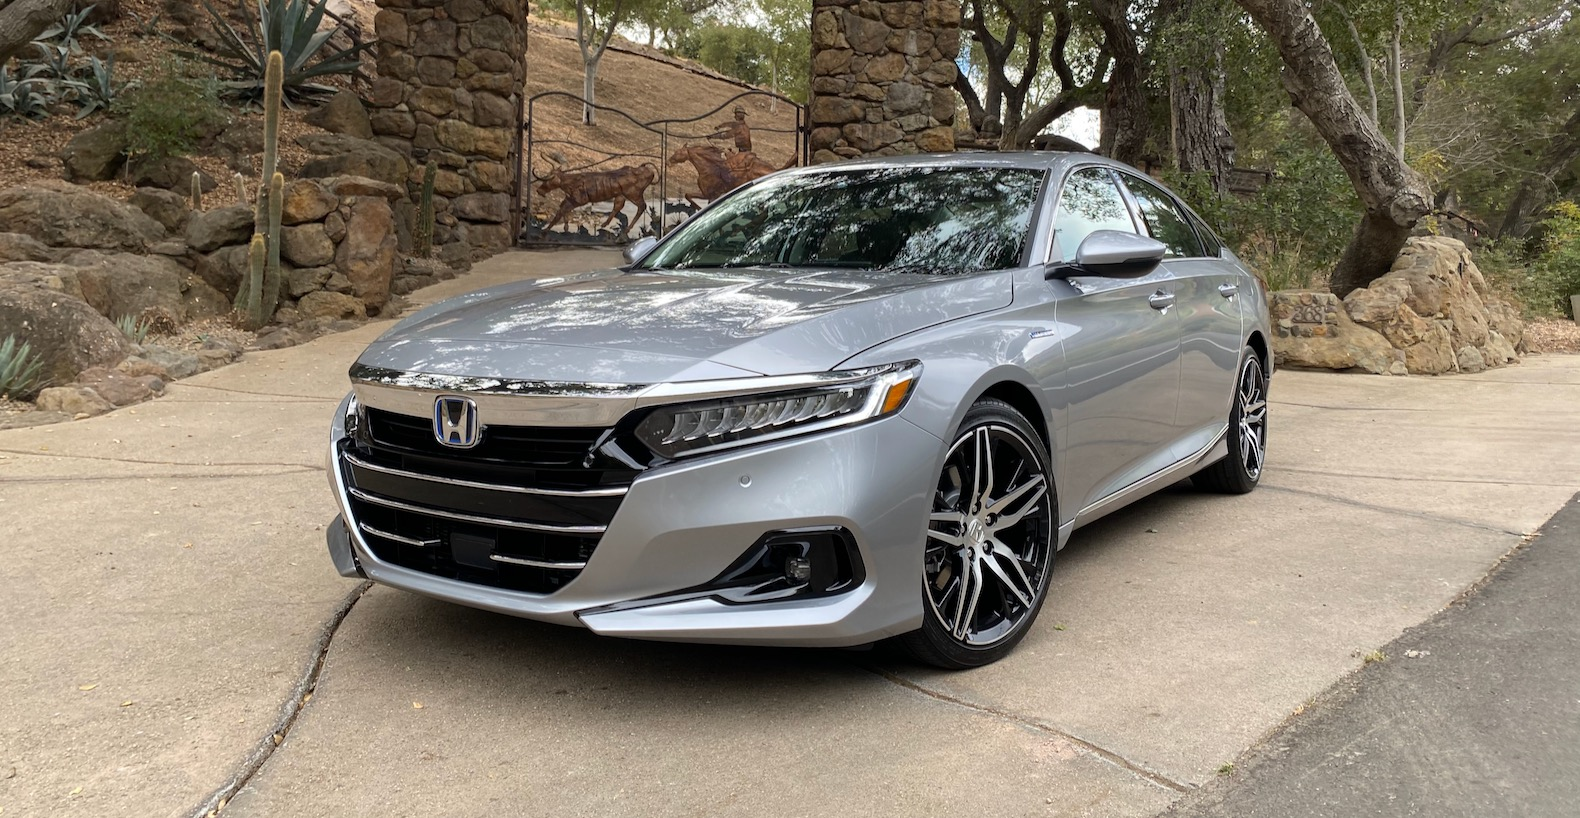 2021 Honda Accord Hybrid Review